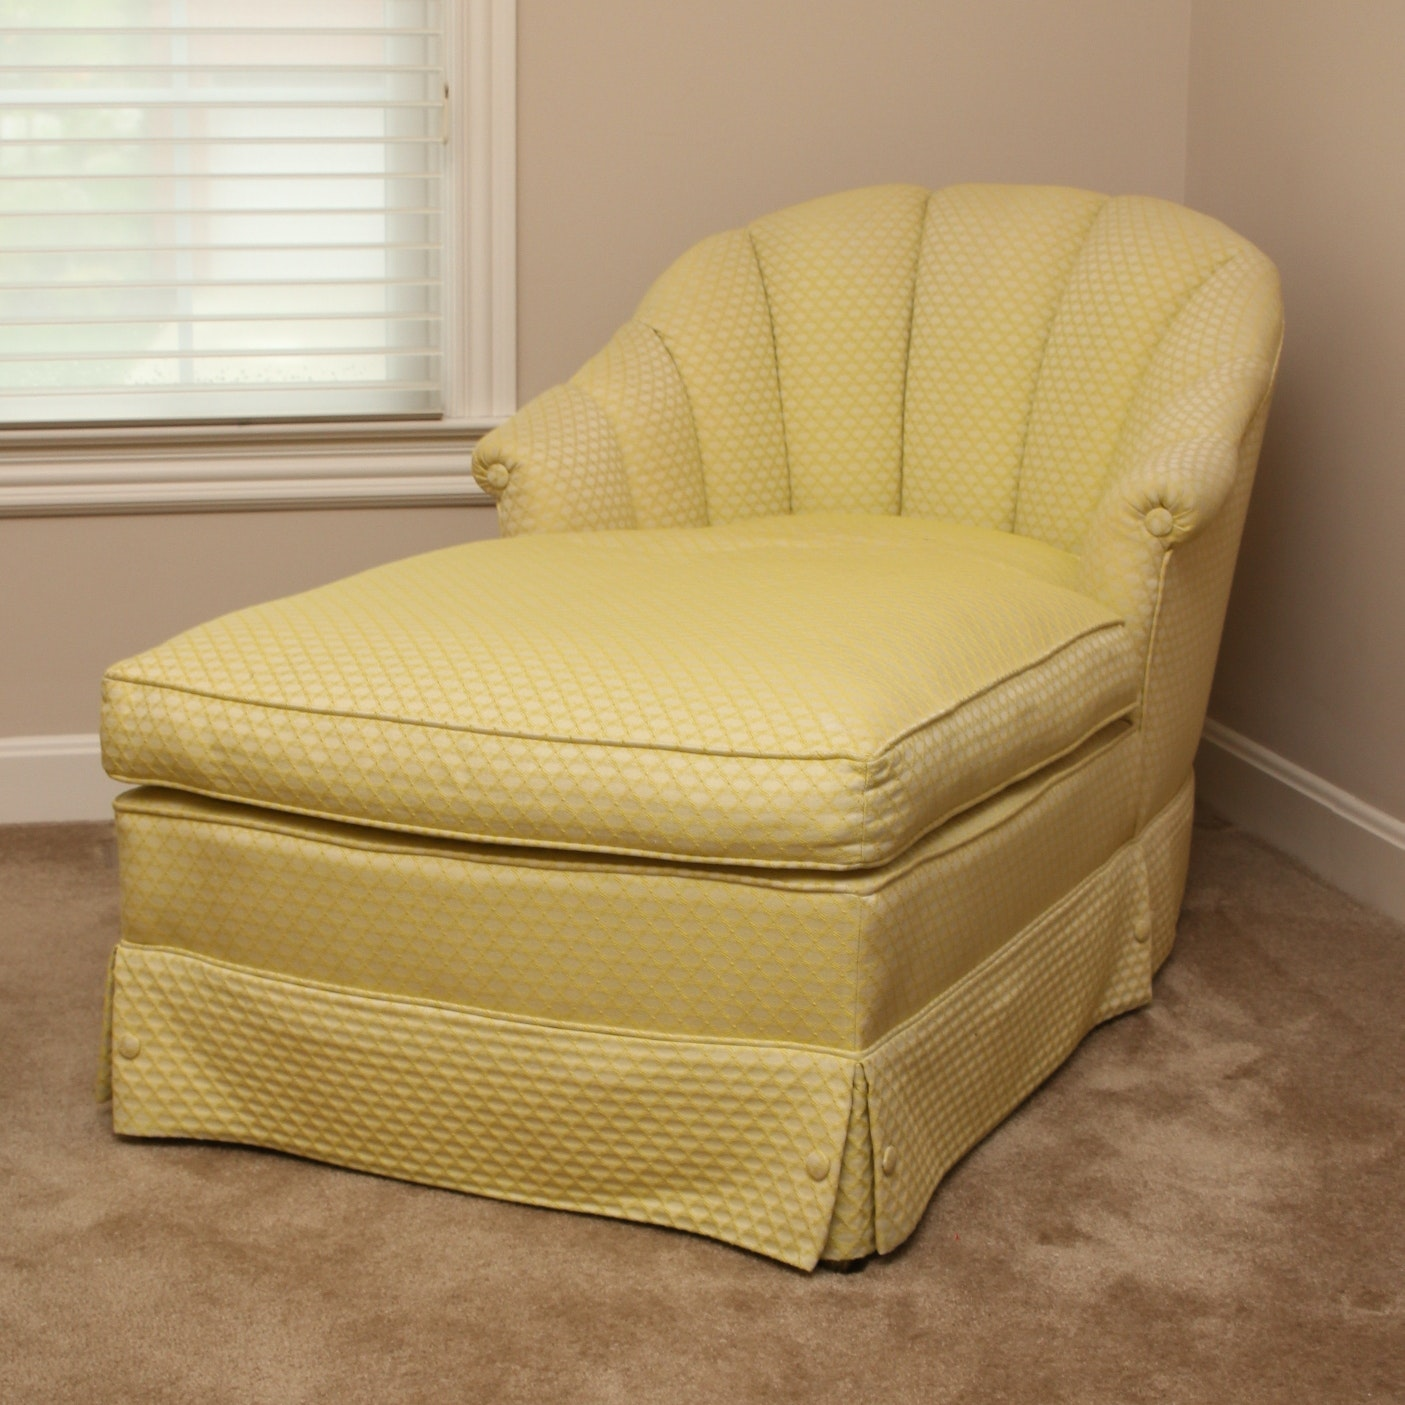 Channel Back Chaise Lounger